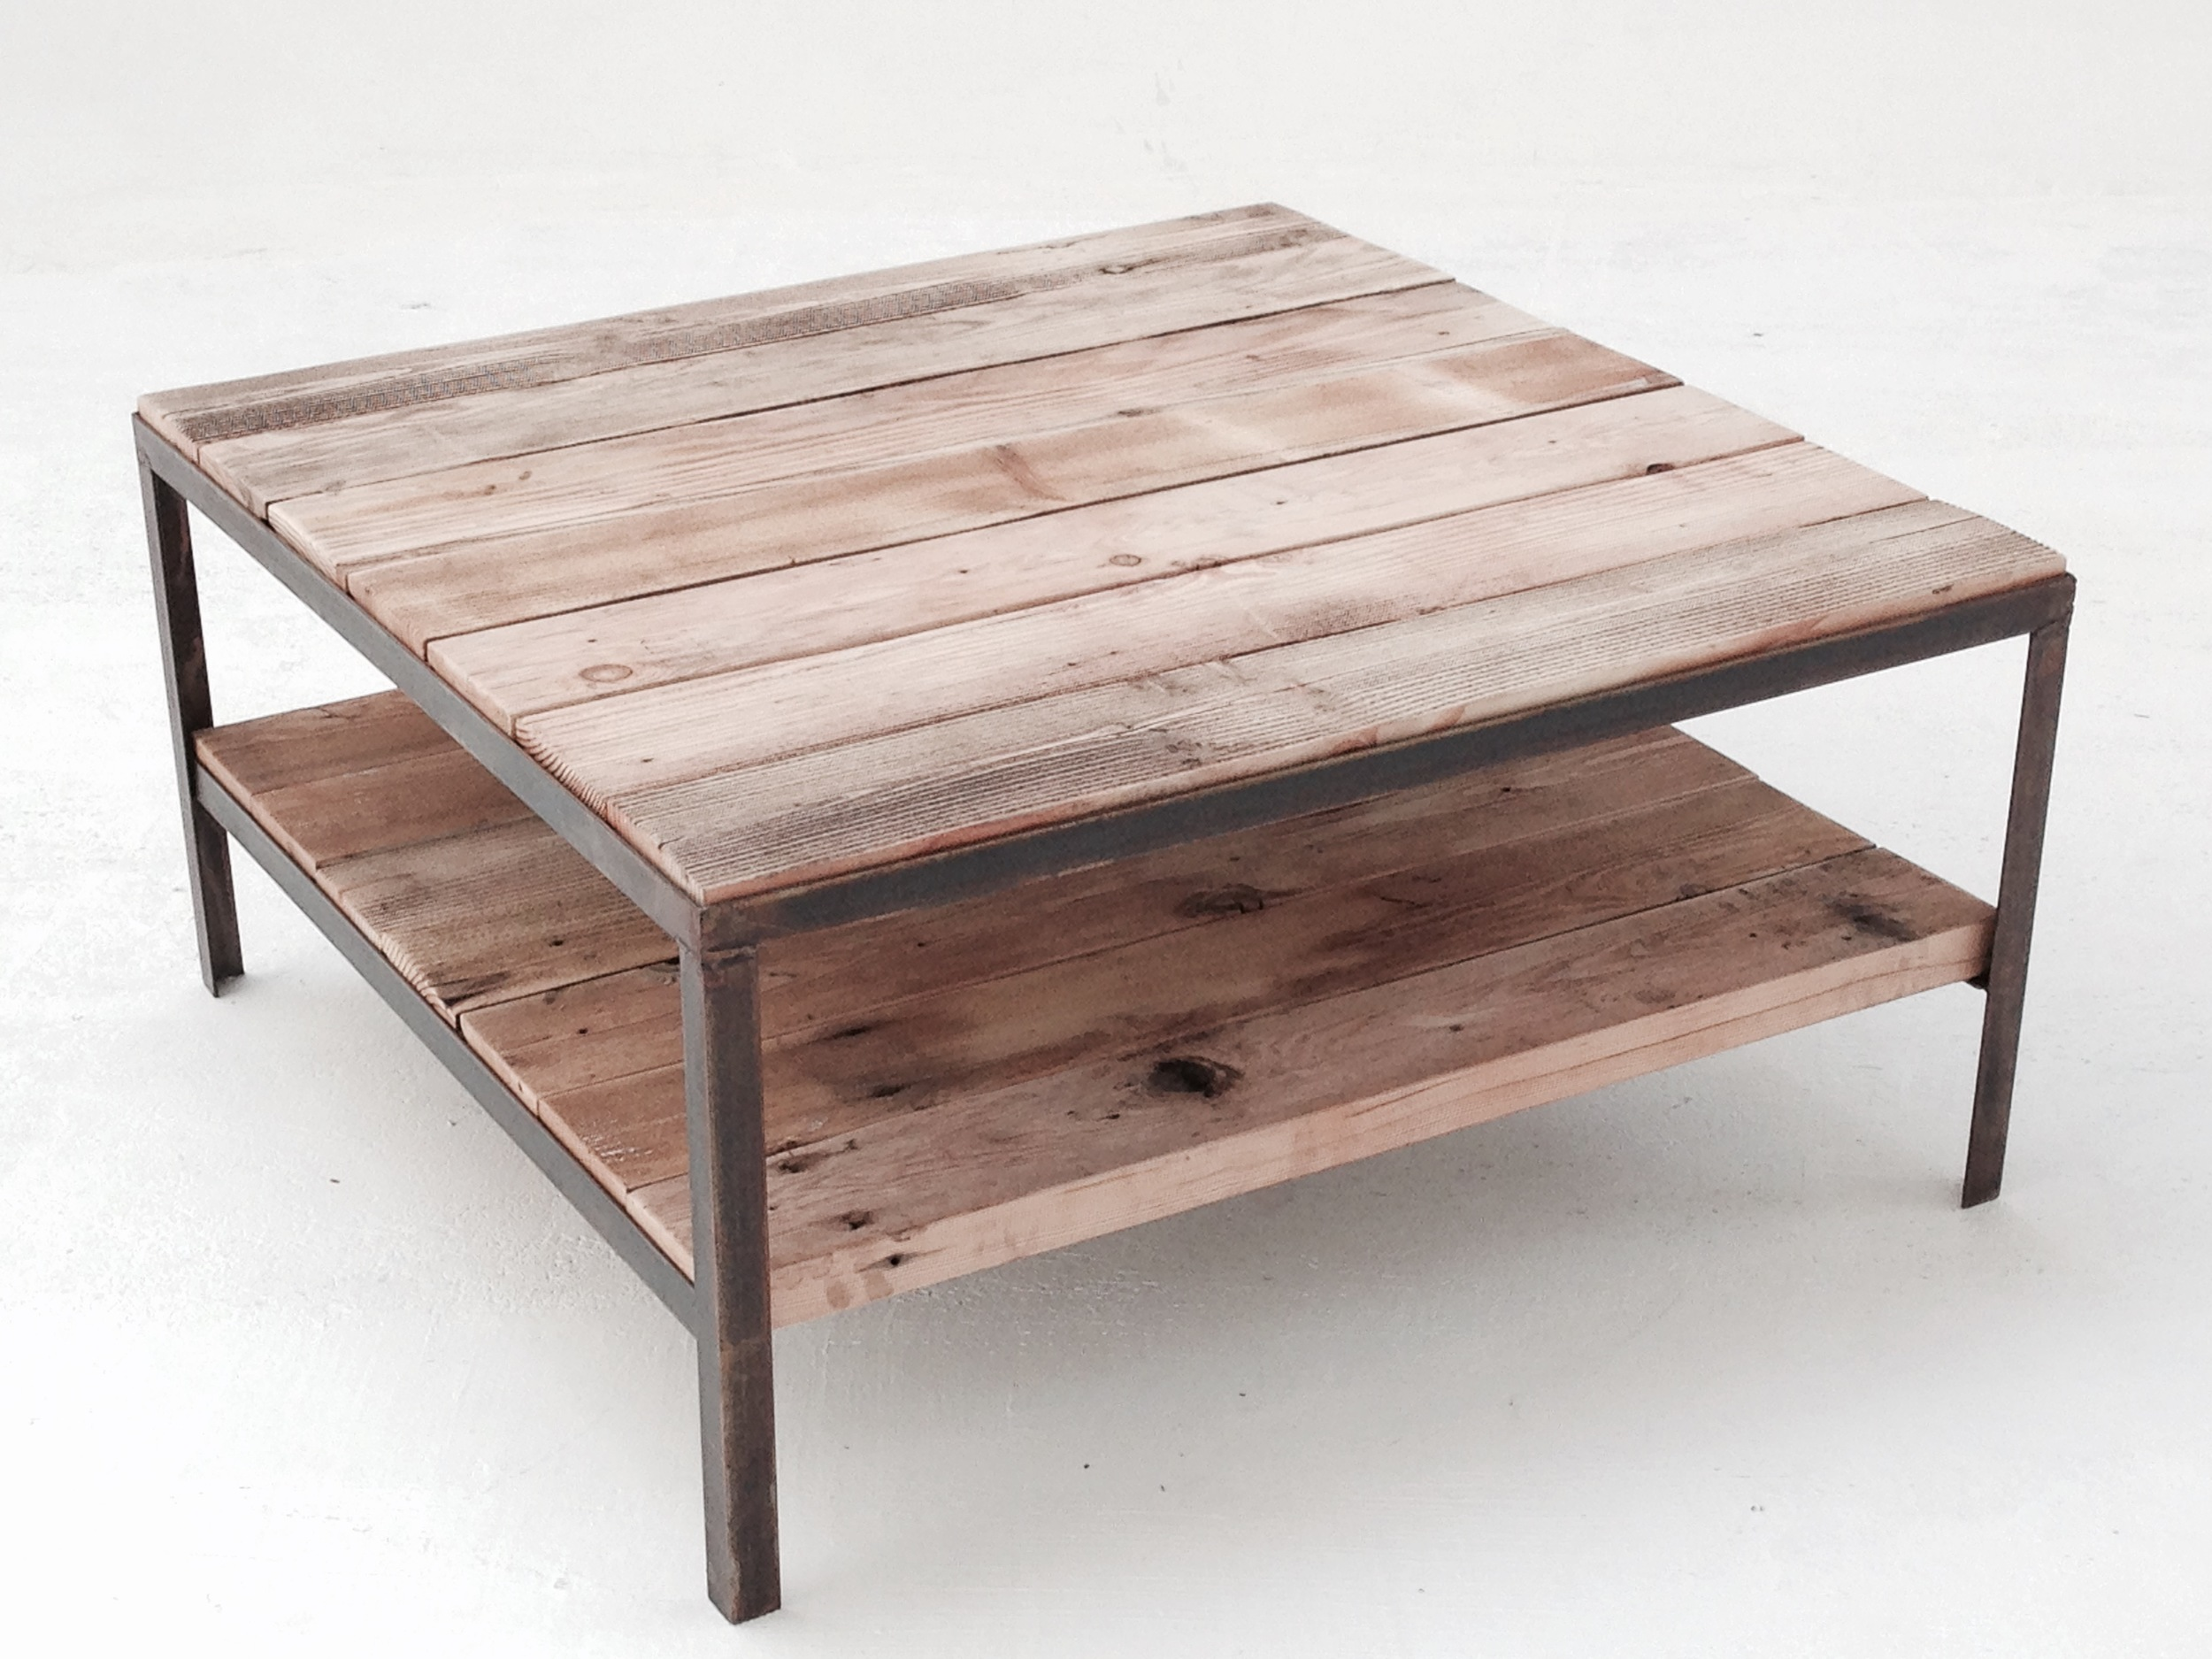 Two tiered coffee table. Materials: reclaimed fir, bronzed steel